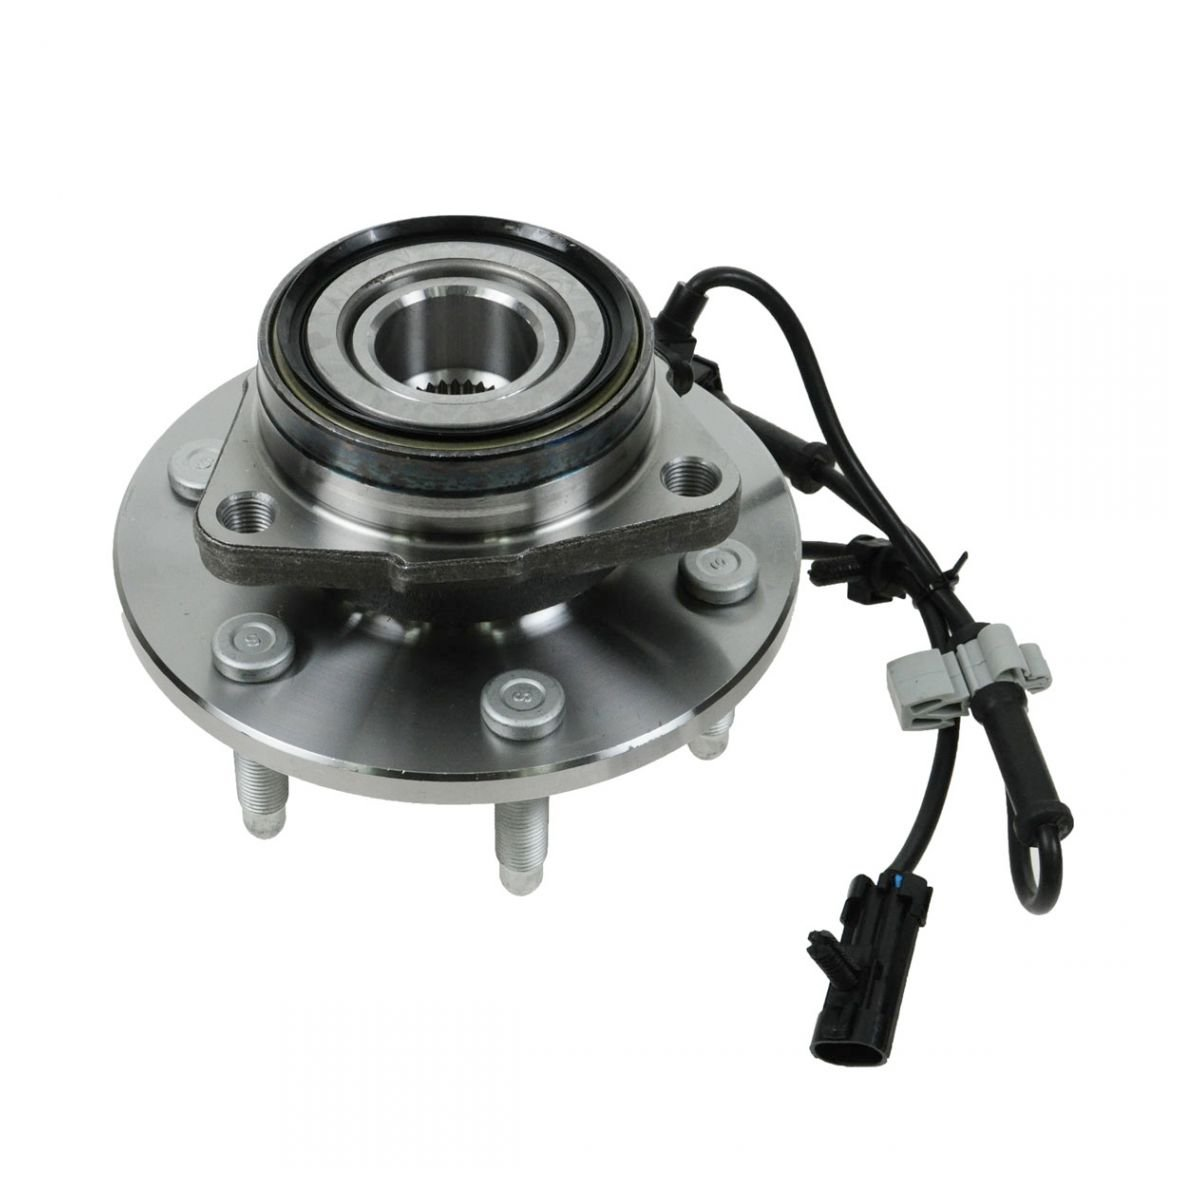 Front Wheel Hub & Bearing w/ABS for Chevy GMC Pickup Truck 4X4 4WD AWD by AM Autoparts